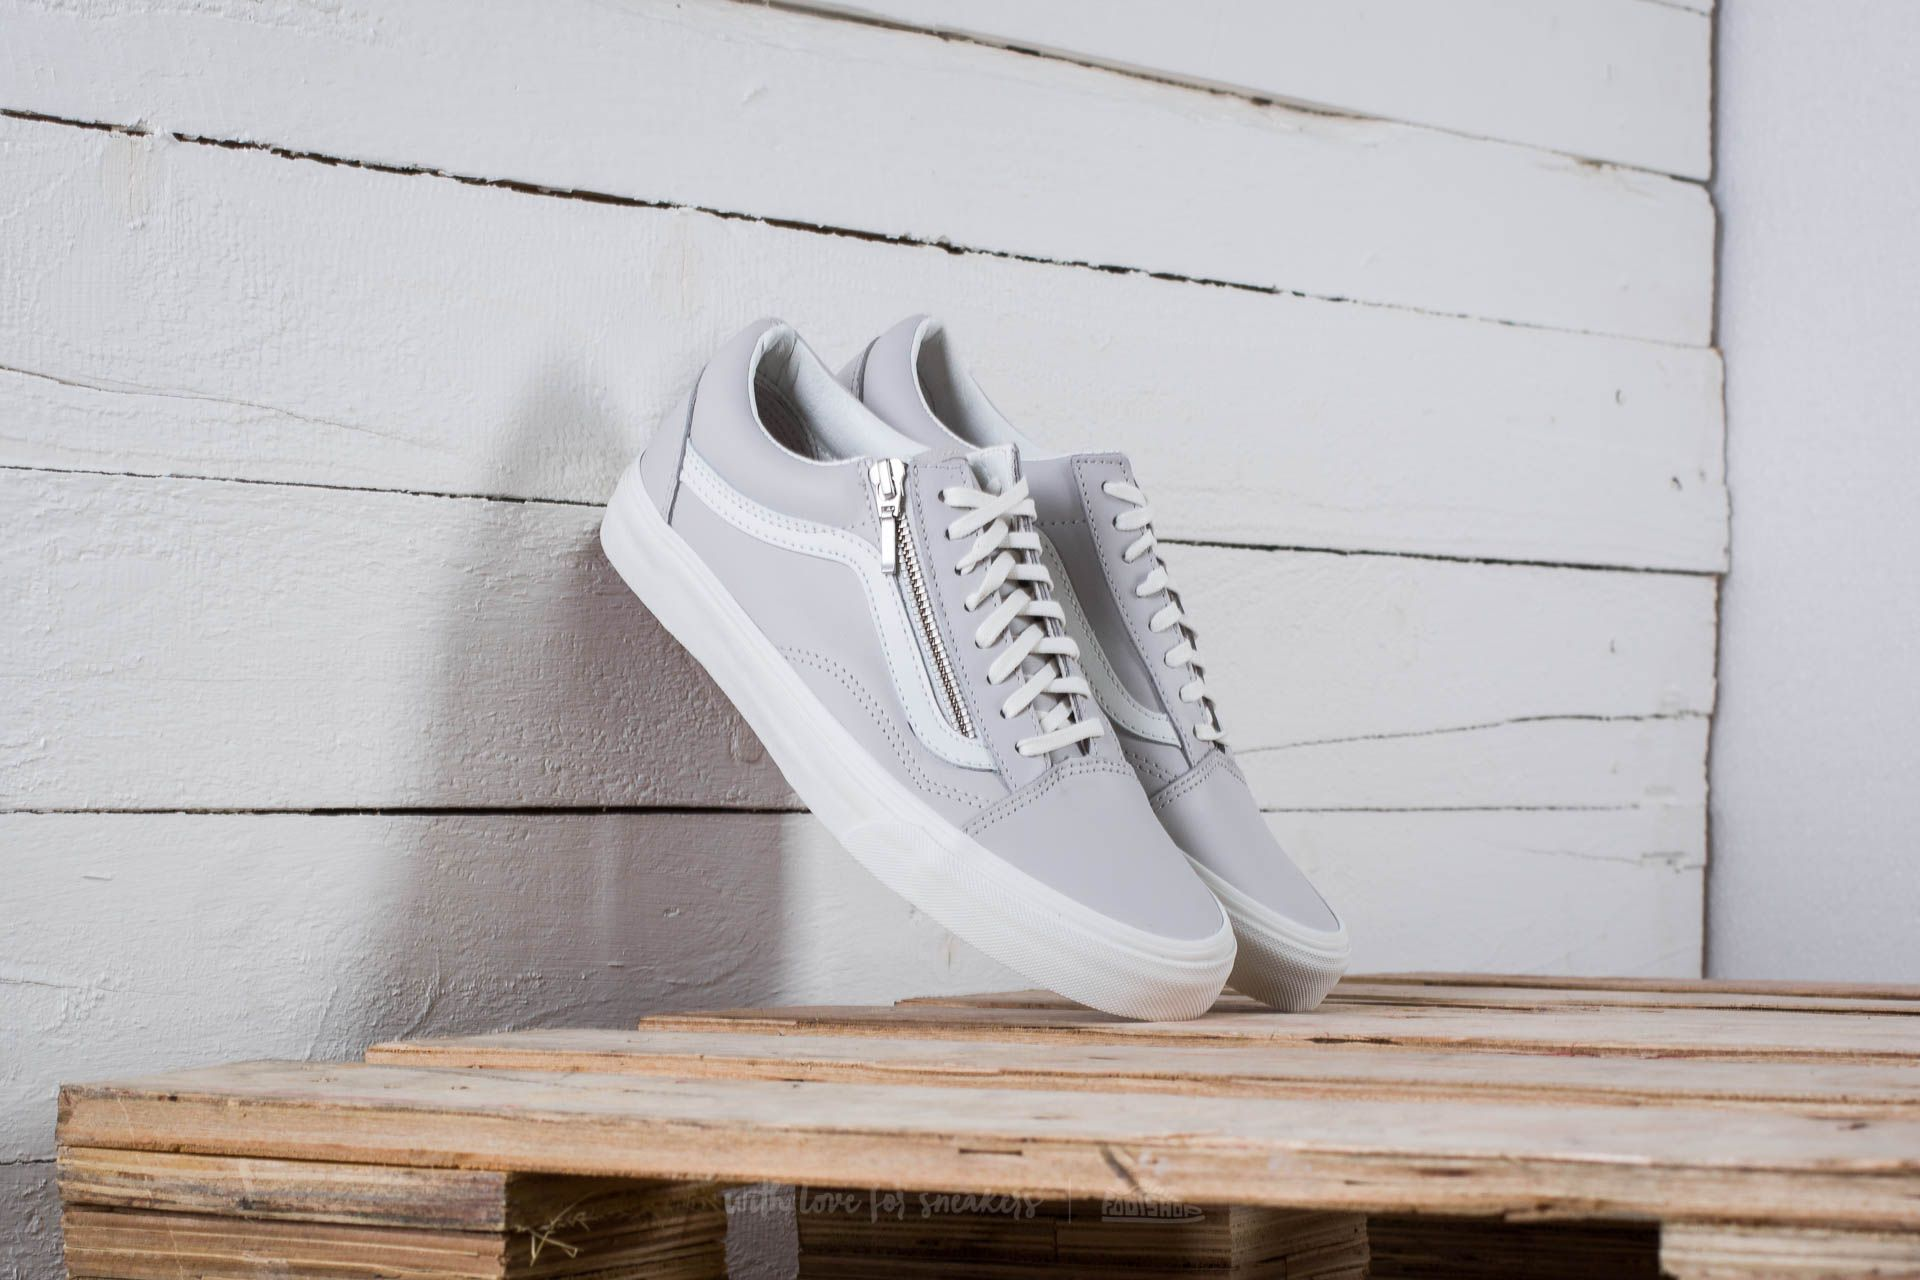 Vans Old Skool Zip Sneaker Wind Chime